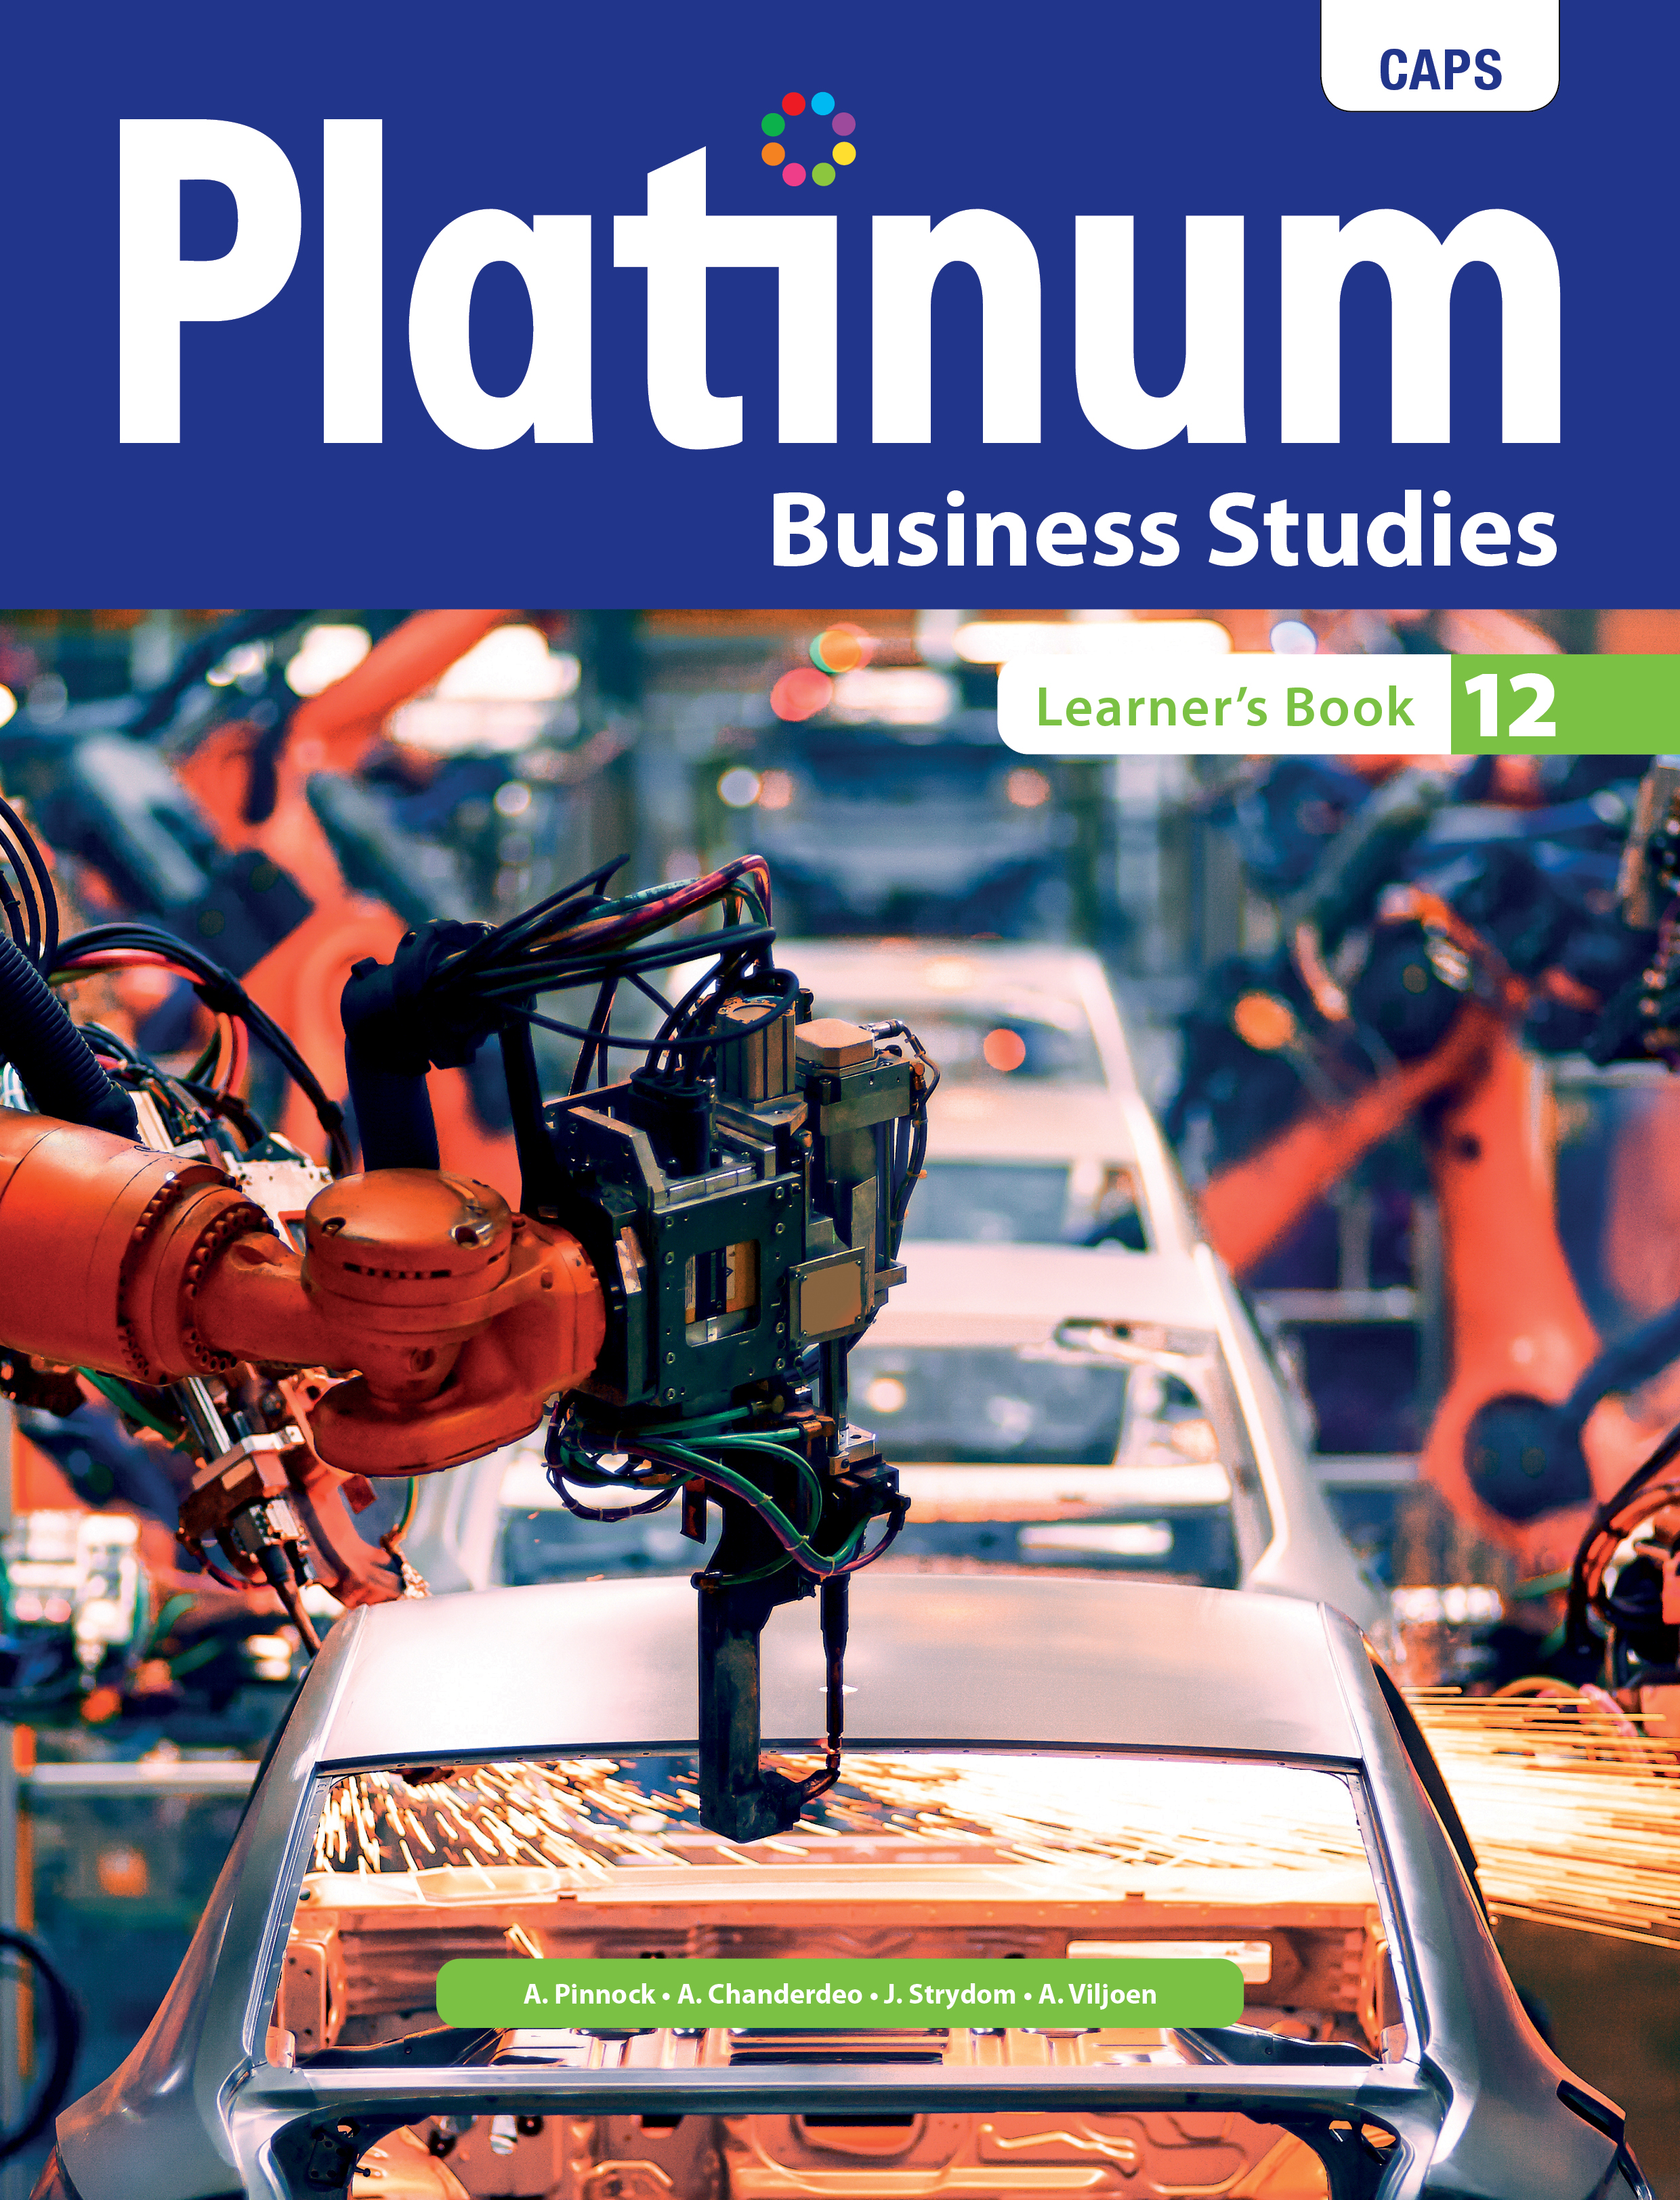 Platinum Business Studies CAPS: Platinum business studies: Grade 12: Learner's book Gr 12: Learner's Book